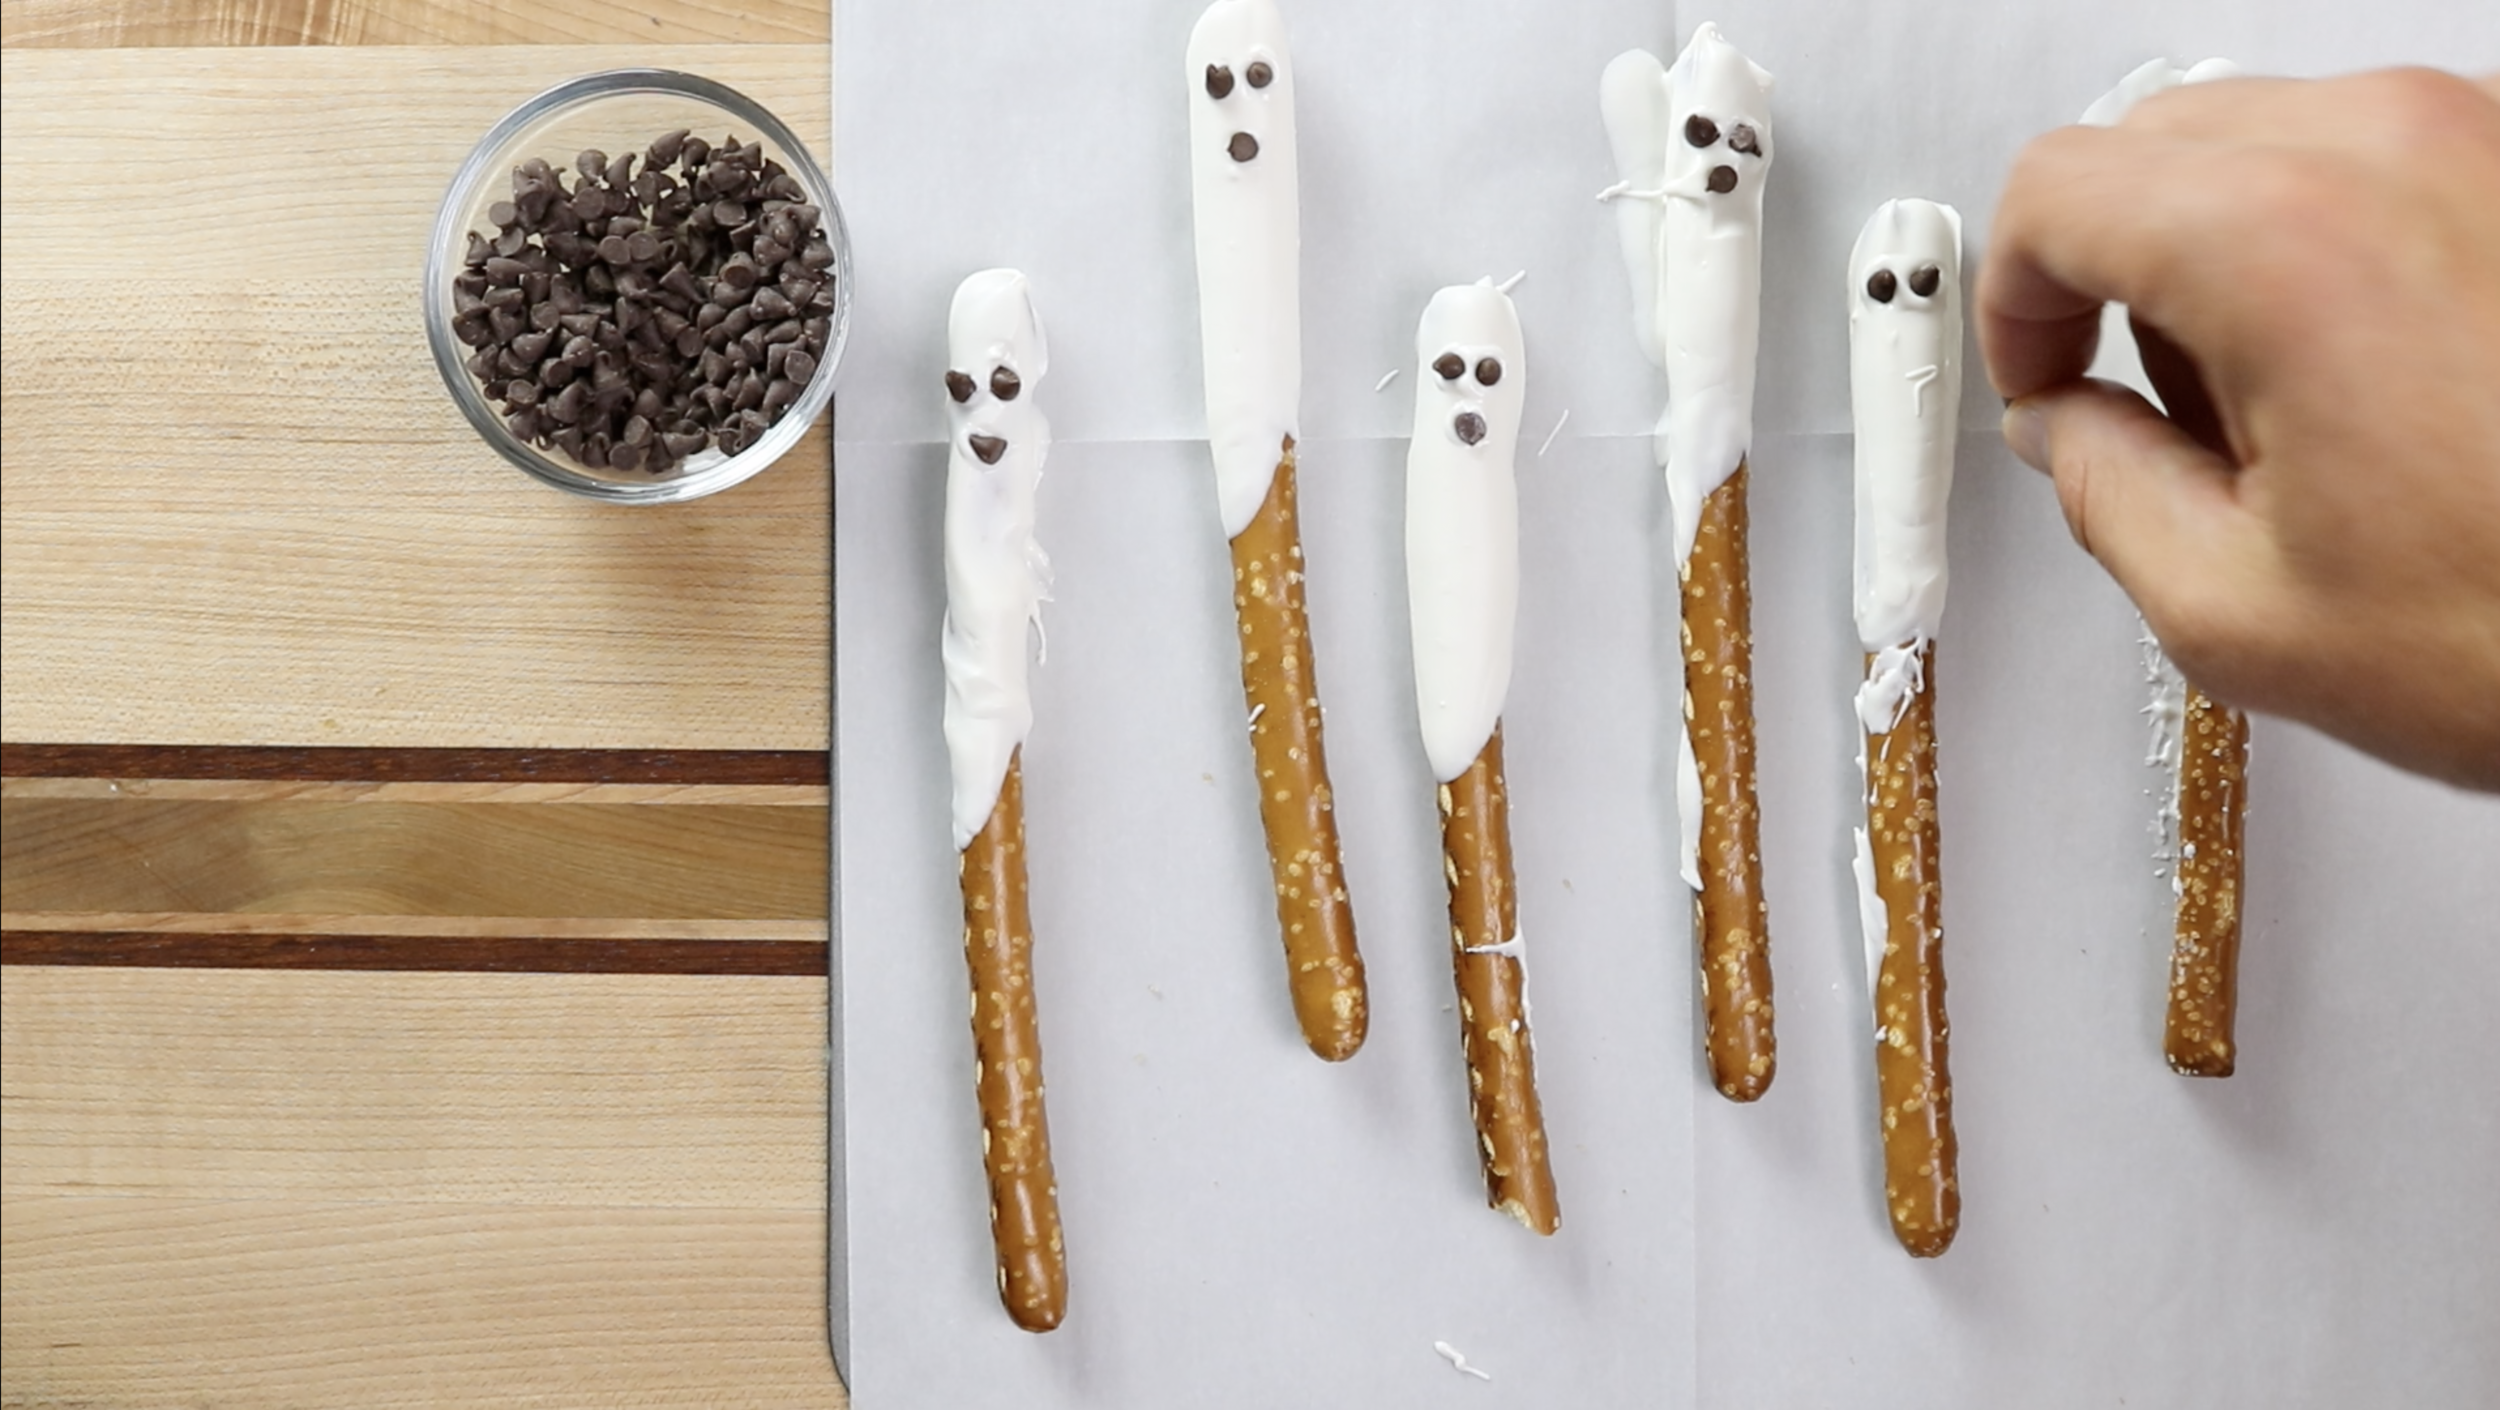 6. Create eyes and mouth with chocolate chips. -